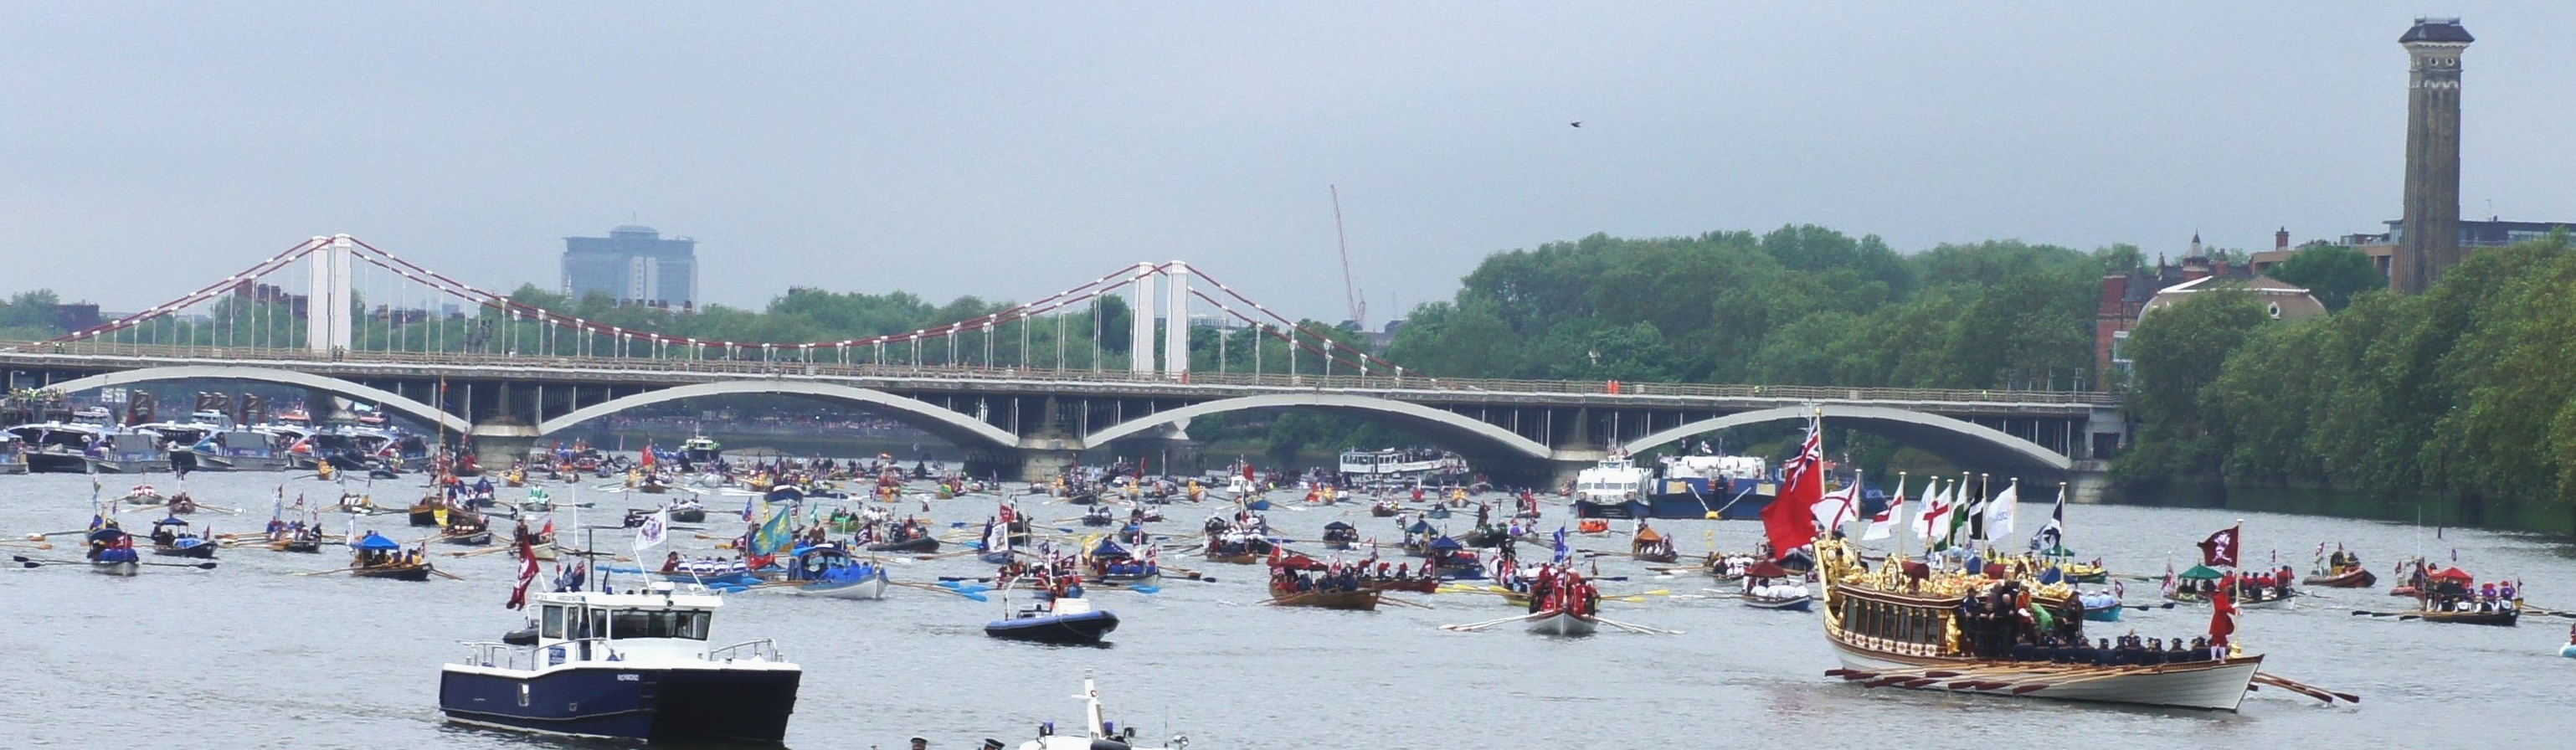 QRB leads the way in the vast river pageant